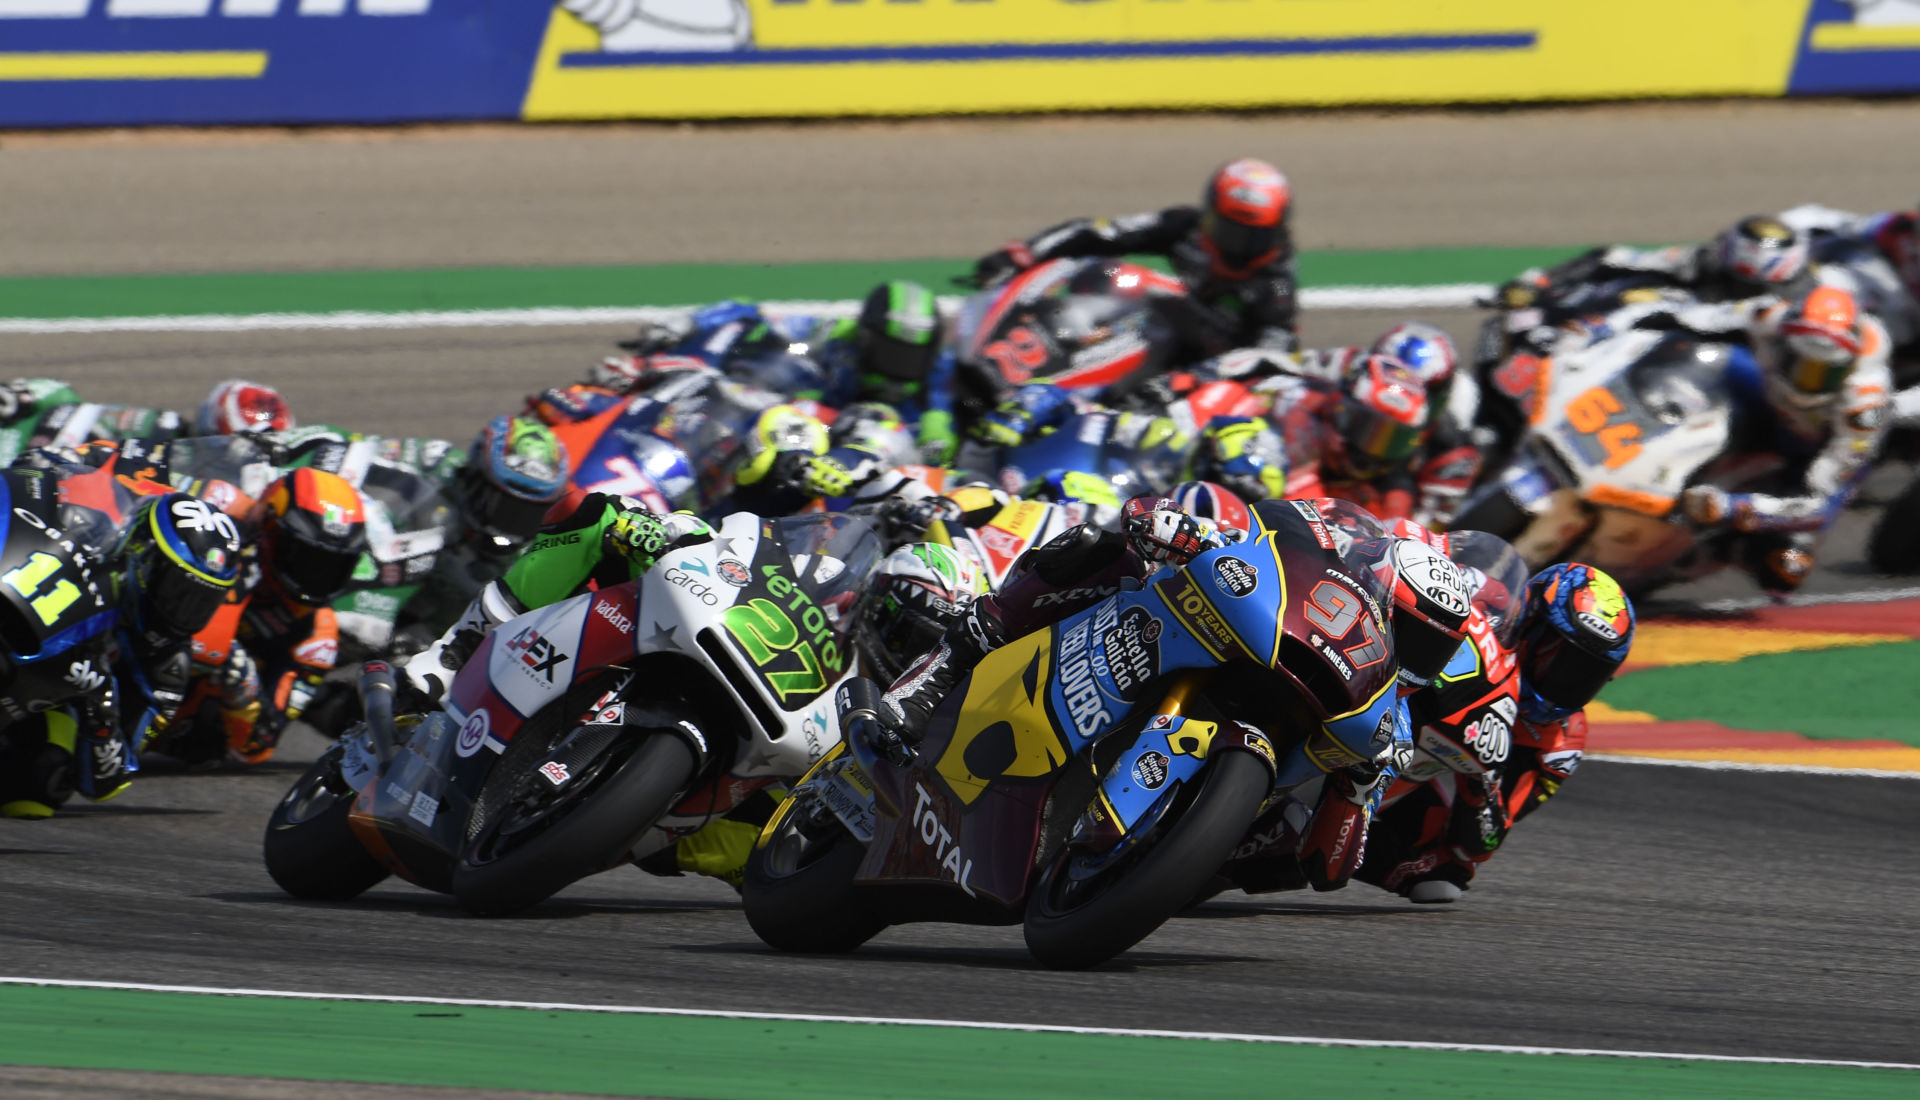 Moto2 And Moto3 World Championship Teams Announced For 2020